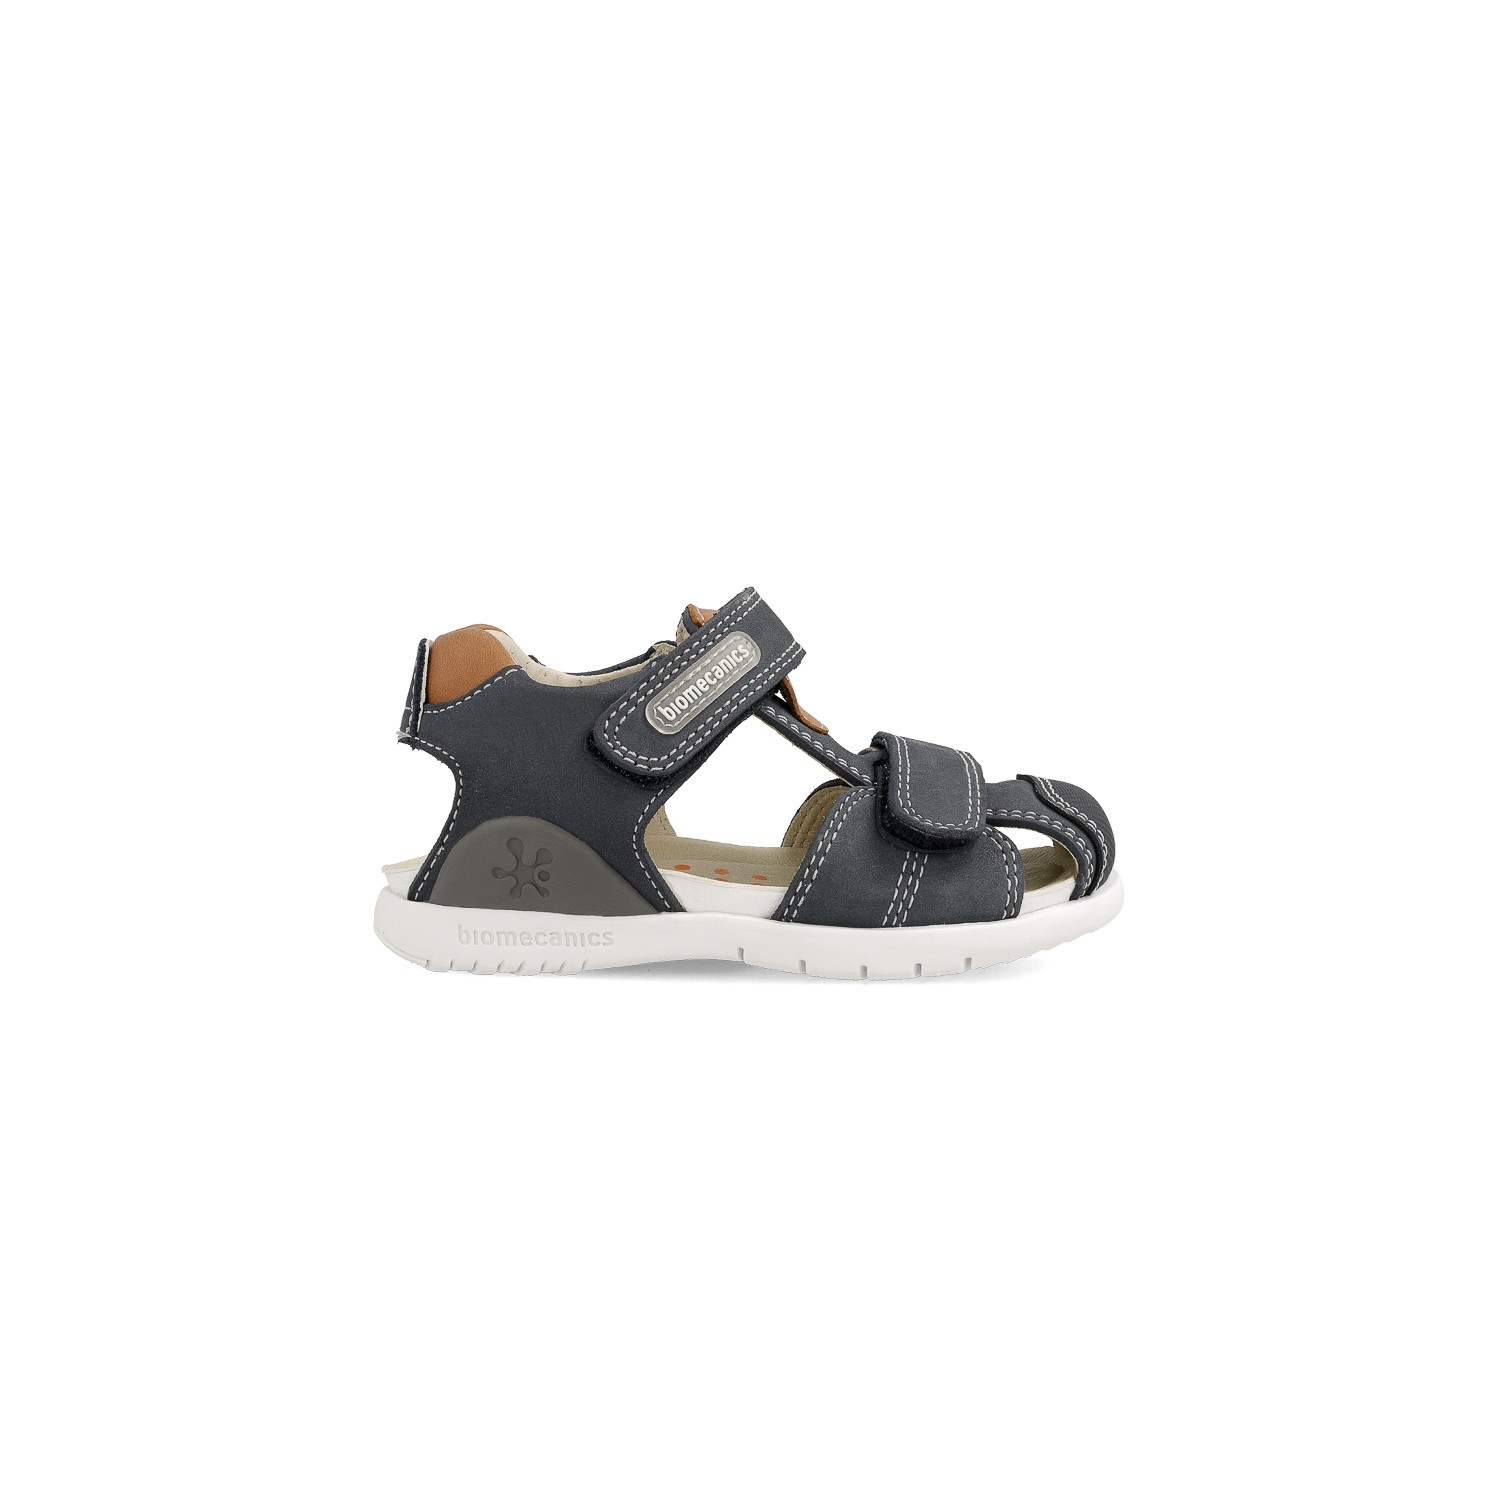 Leather sandals for boy Kiko